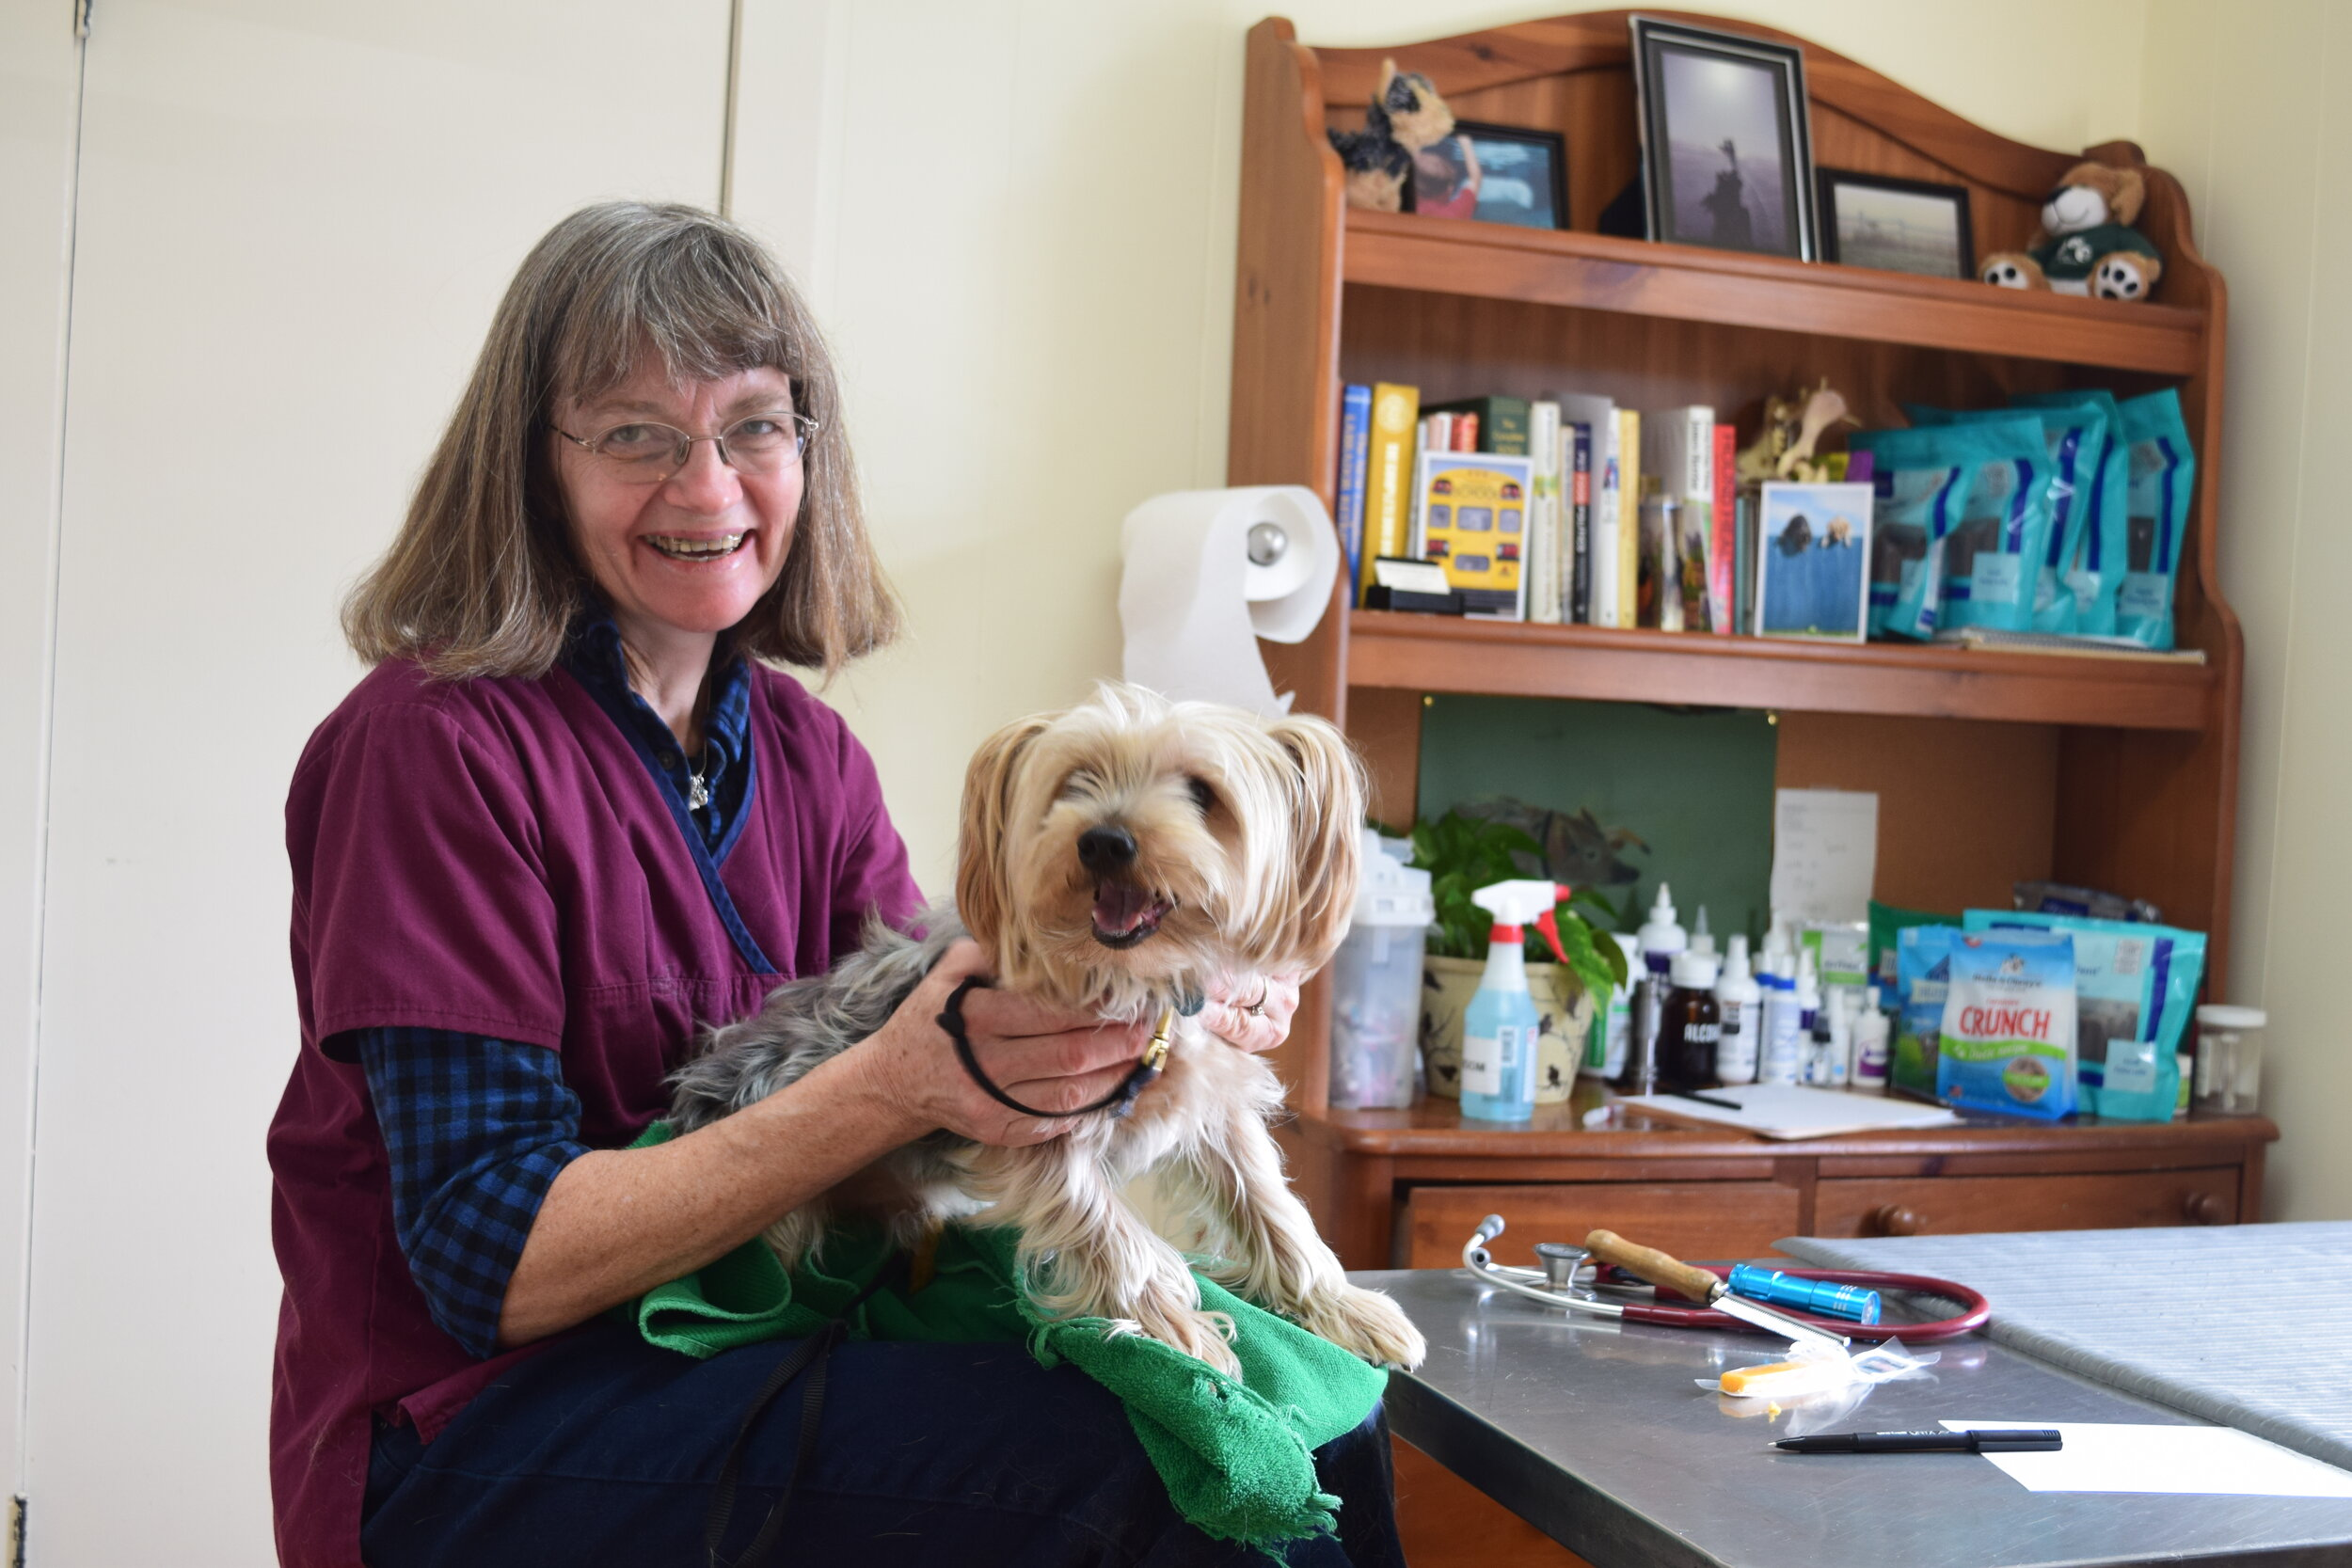 "We refer Dr Patti as the ""Pet Whisperer"" - She is compassionate, calm, considered, and the best vet we've ever had. Our fur children have been her patients for nearly 30 years and have lived long and healthy lives due to her accomplished and skilled experience. Homecare provides exceptional care and hospice services. There are no better vet in the greater Princeton region!!-Gwen and Philipwith Hobbit, Huckleberry, Bianca, Cocopuff, and Daisy"